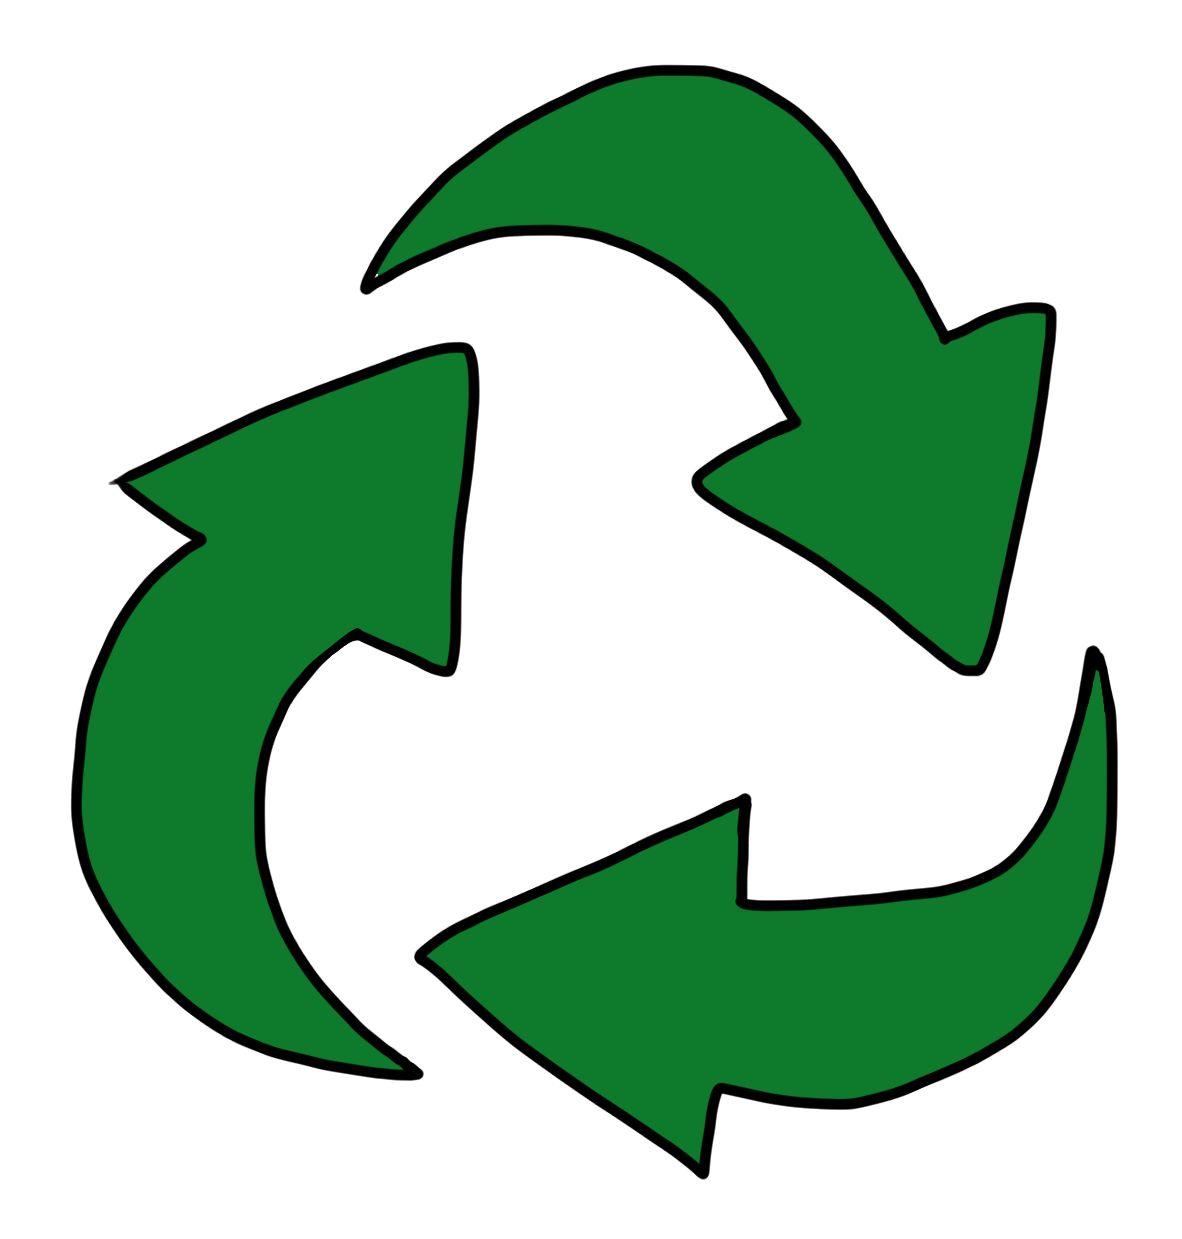 Recycle recycling clip art pictures free clipart images.